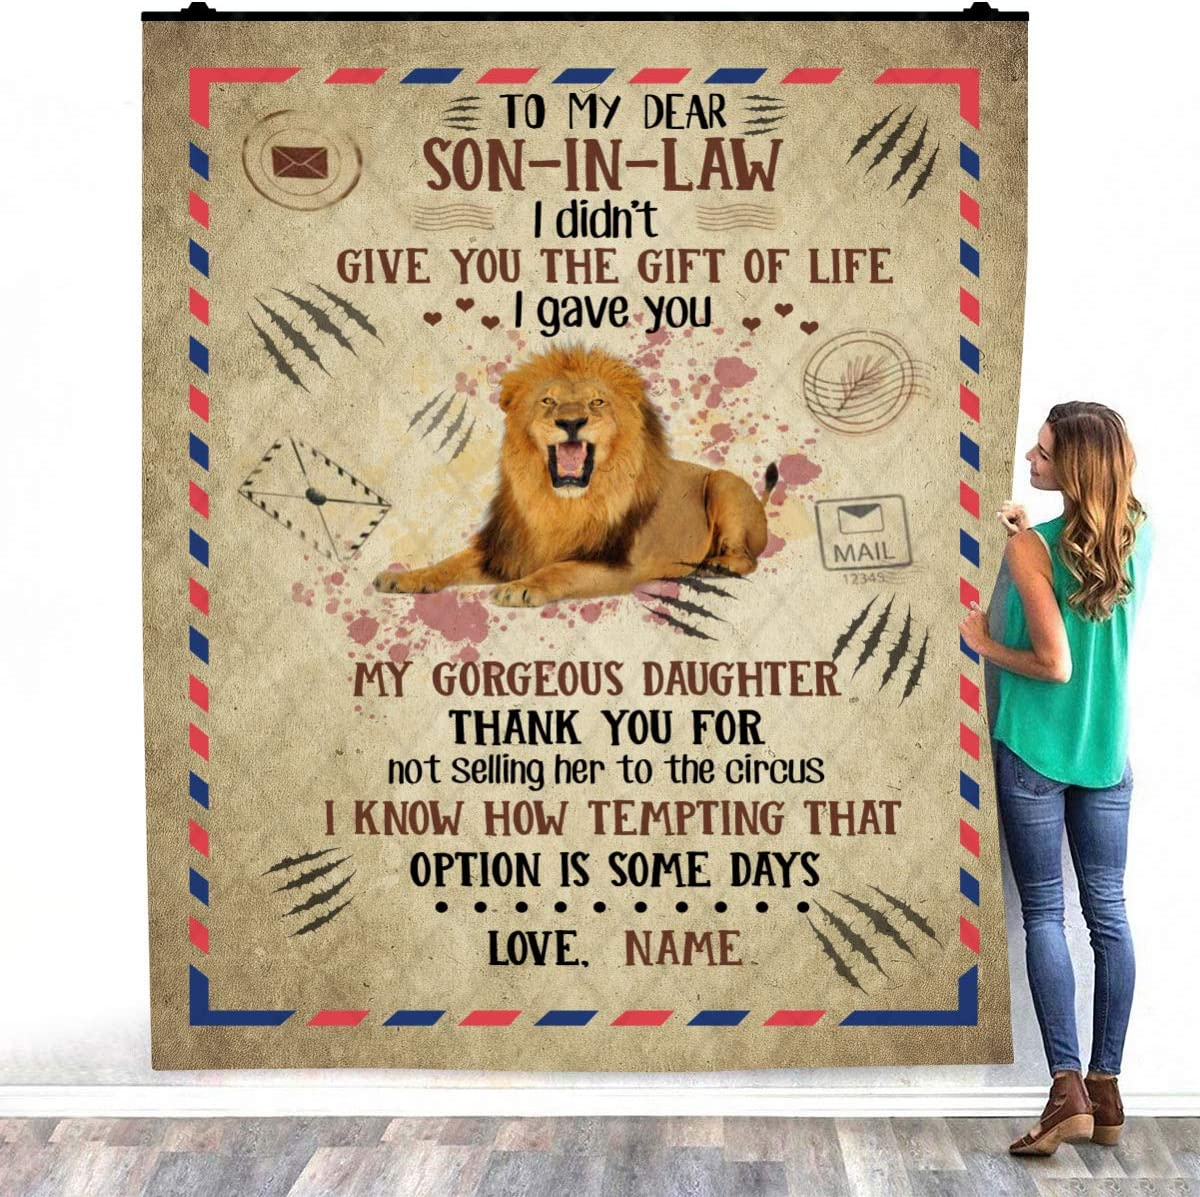 Personalized Name Message Lover Letter to Dear My fro Law in All stores are sold Special price for a limited time Son